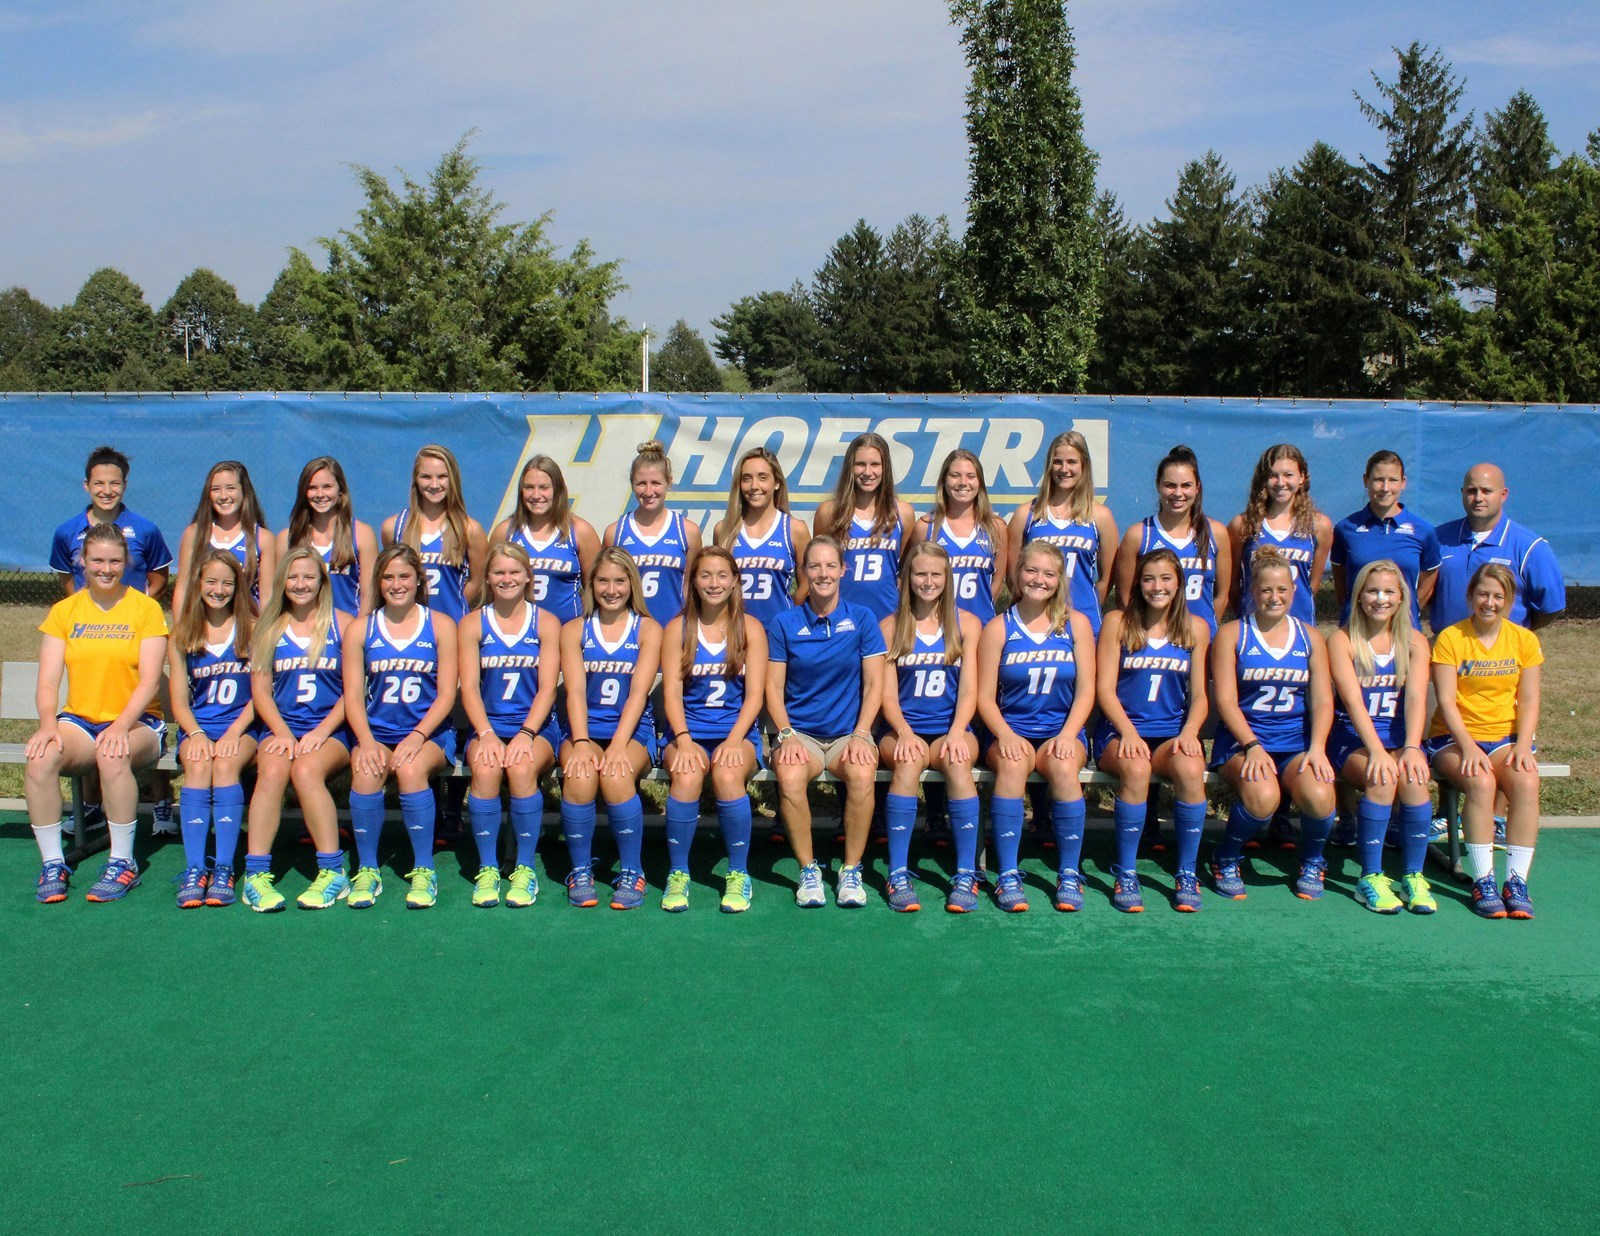 fh hofstra receives seventh consecutive nfhca national academic